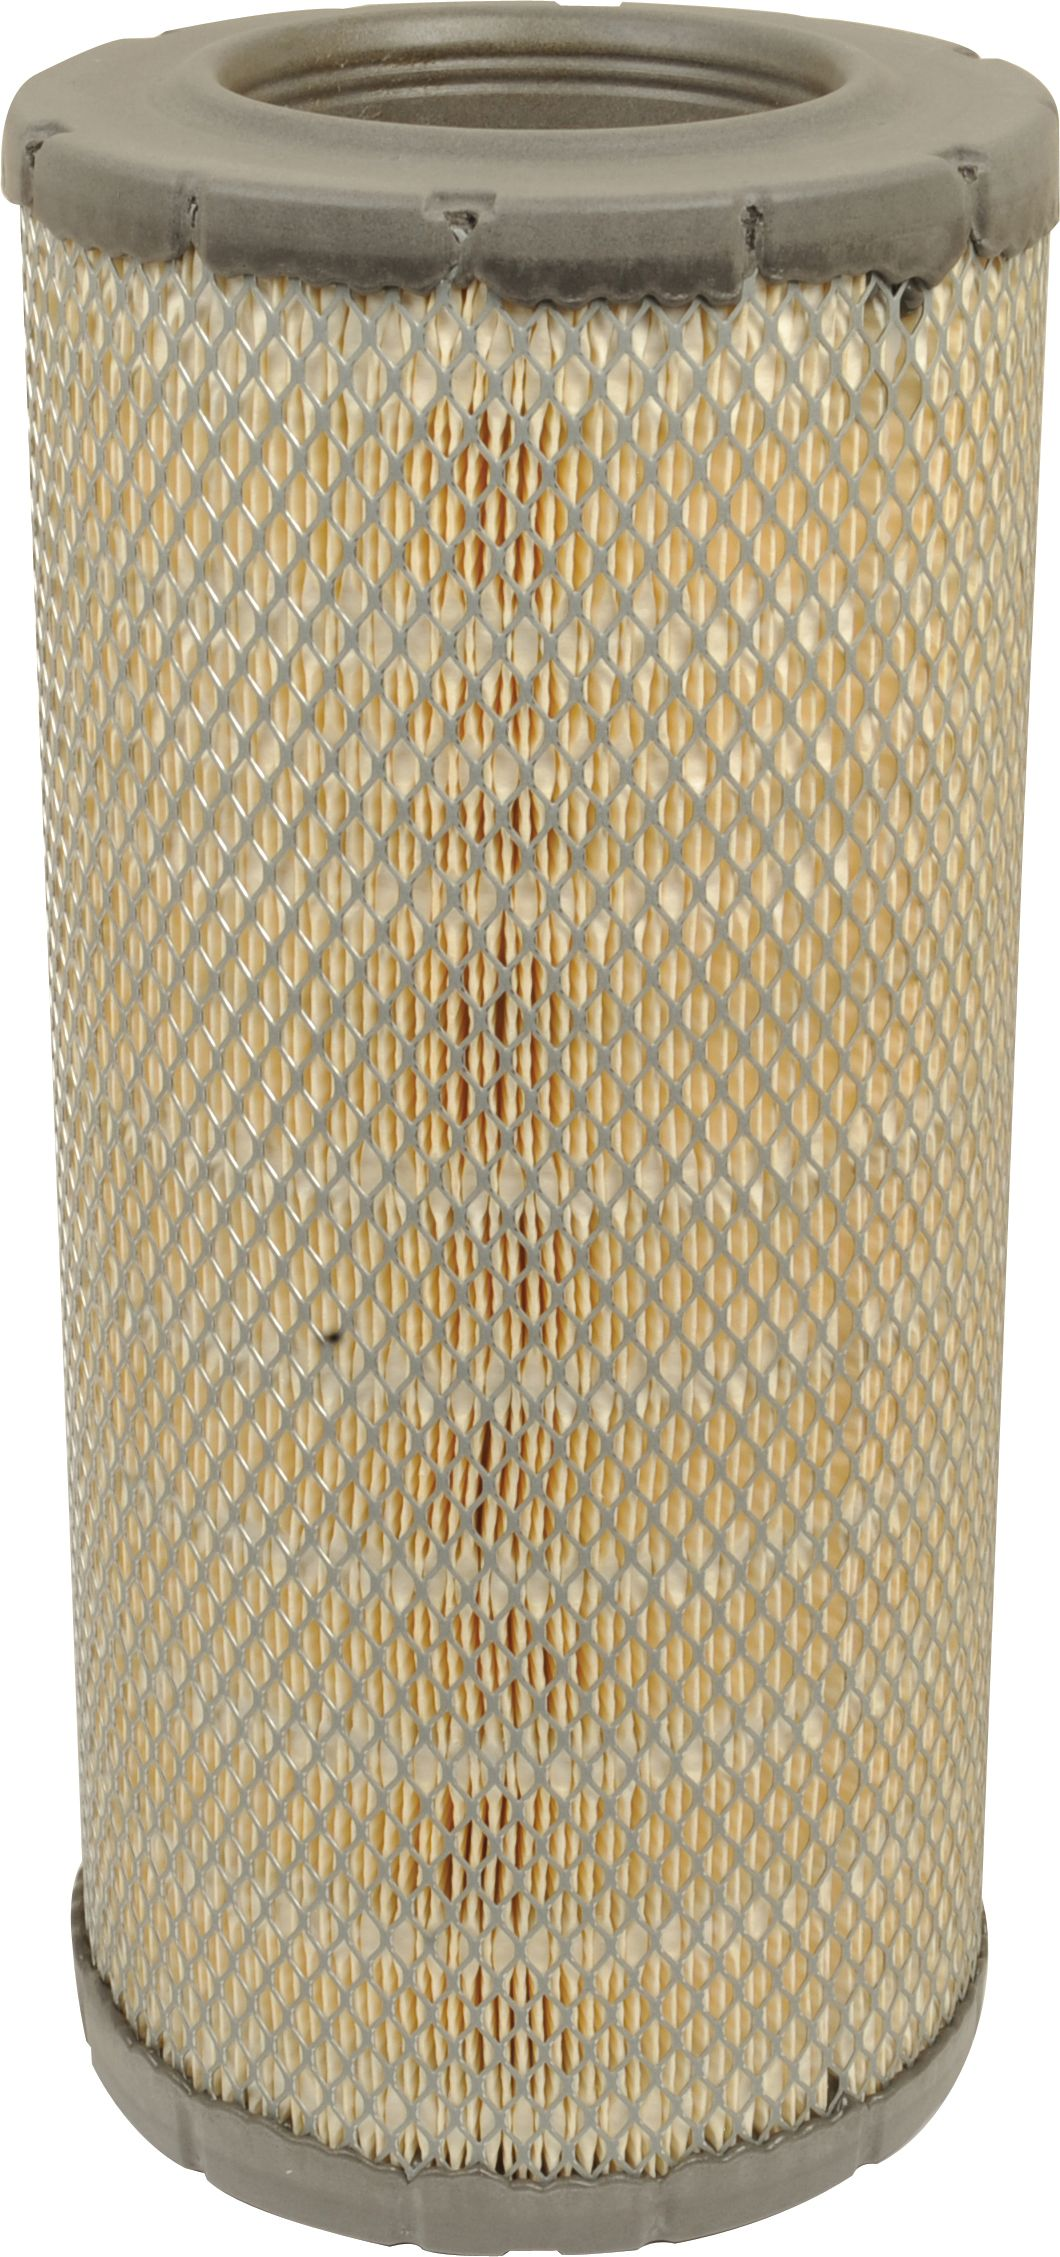 MANITOU OUTER AIR FILTER AF25795 108826